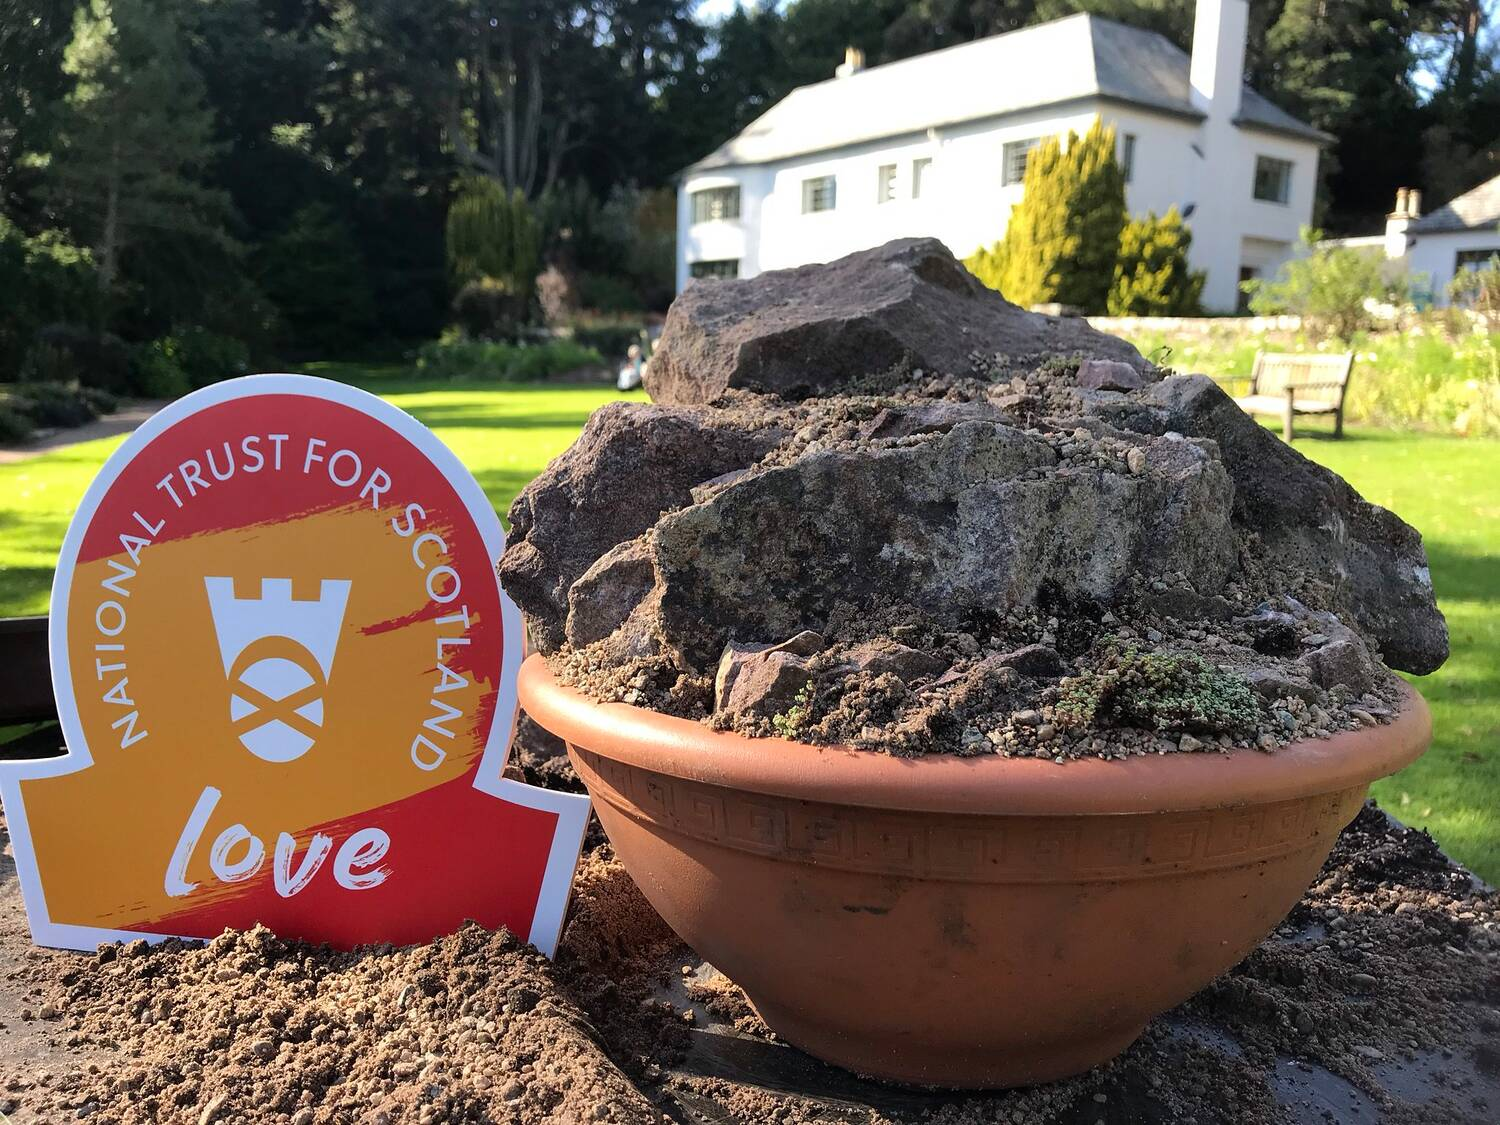 A terracotta urn filled with rocks and soil stands on the lawn in front of Inverewe House. An orange omega-shaped sign rests beside it with the text LOVE on it.